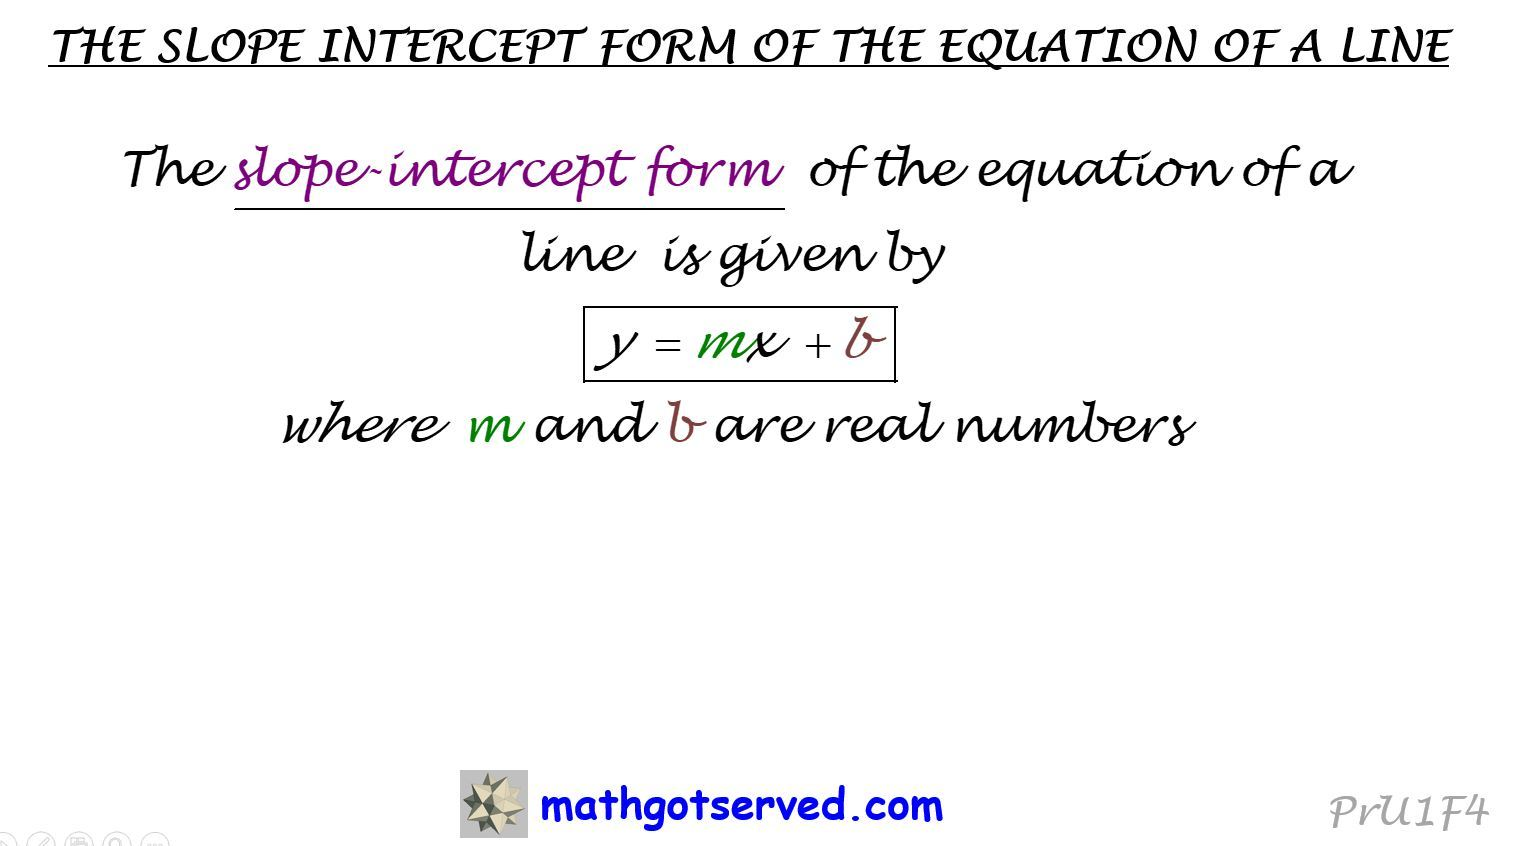 Equation of a line, General form, standard form, vertical line, horizontal line, point-slope, slope intercept form, how to, mathgotserved, precalculus, algebra, calculus, steps, find, change in y, transform, positive slope, negative, vertical, horizontal, plane, y=mx+b, Ax+by=c, Ax+By+C=0, y=k;x=k, absolute value, kuta, worksheets, problems,  solutions, two points, perpendicular, lines, passing through, review, test, regents, cbest, Accuplacer, ACT, SAT, intercepts, inequalities, systems, point of intersection